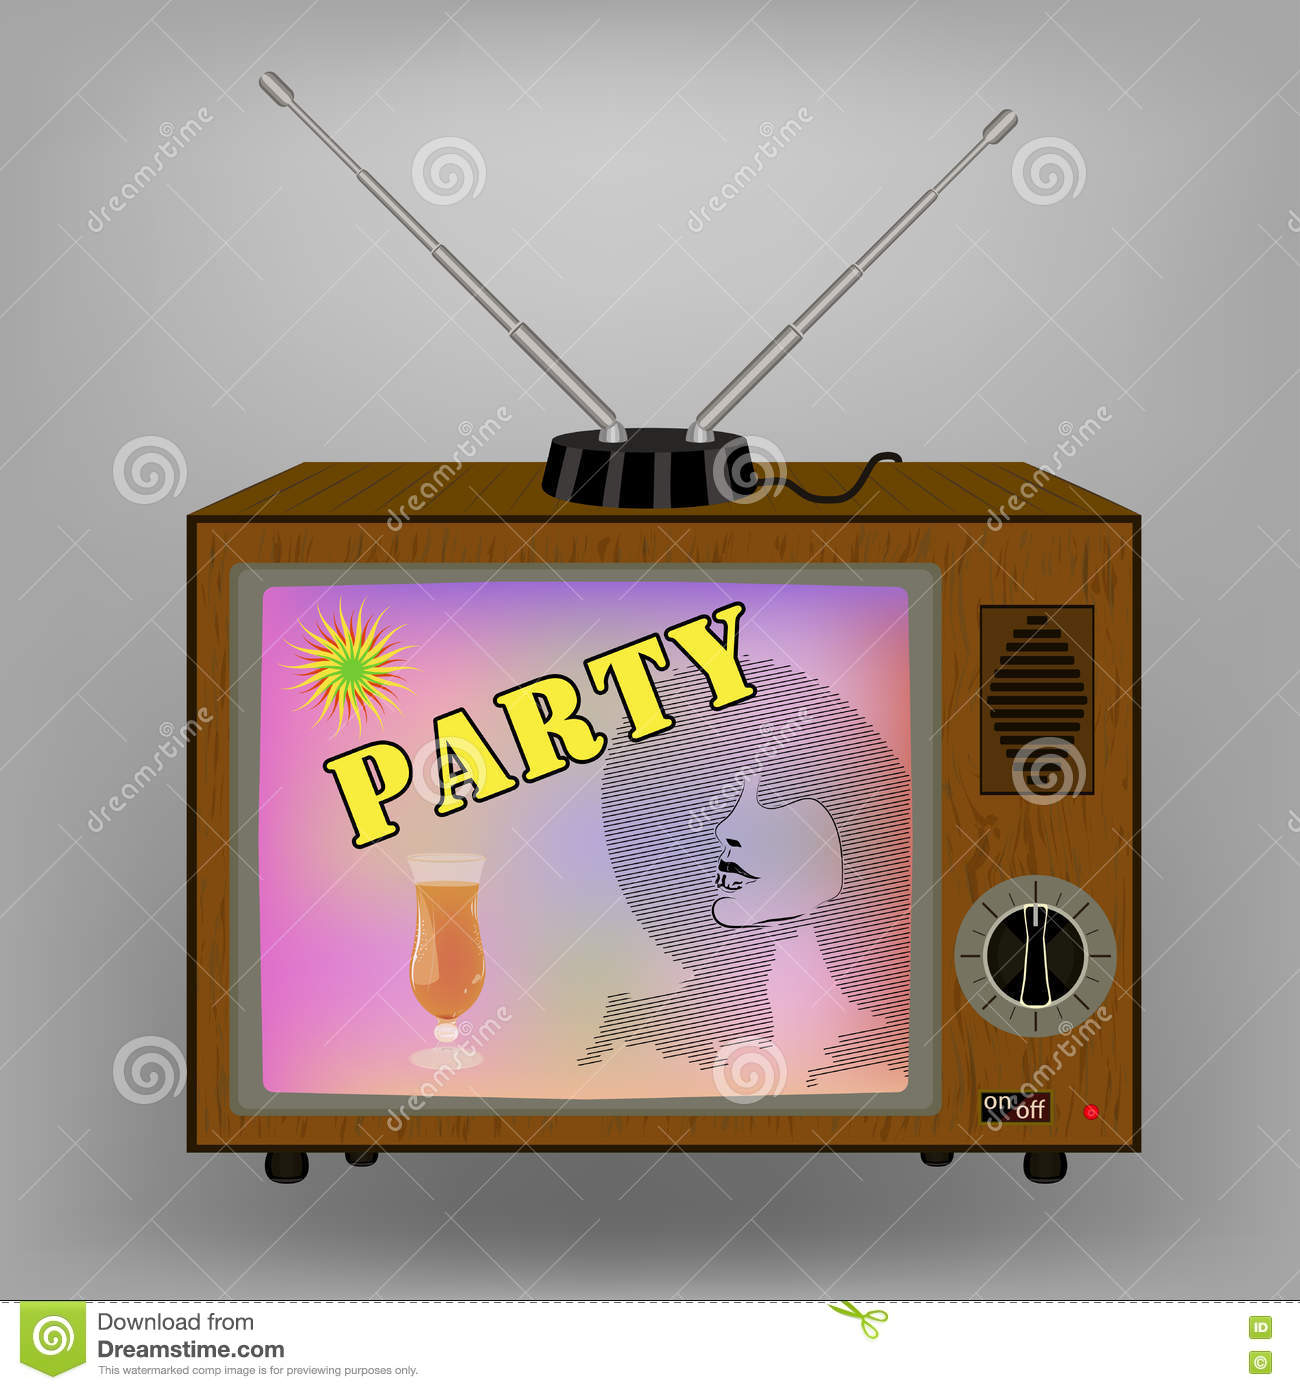 Retro Tv Advertising With A Cocktail Party On Tv Switches And Antenna Stock Vector Illustration Of Banner Program 75685582